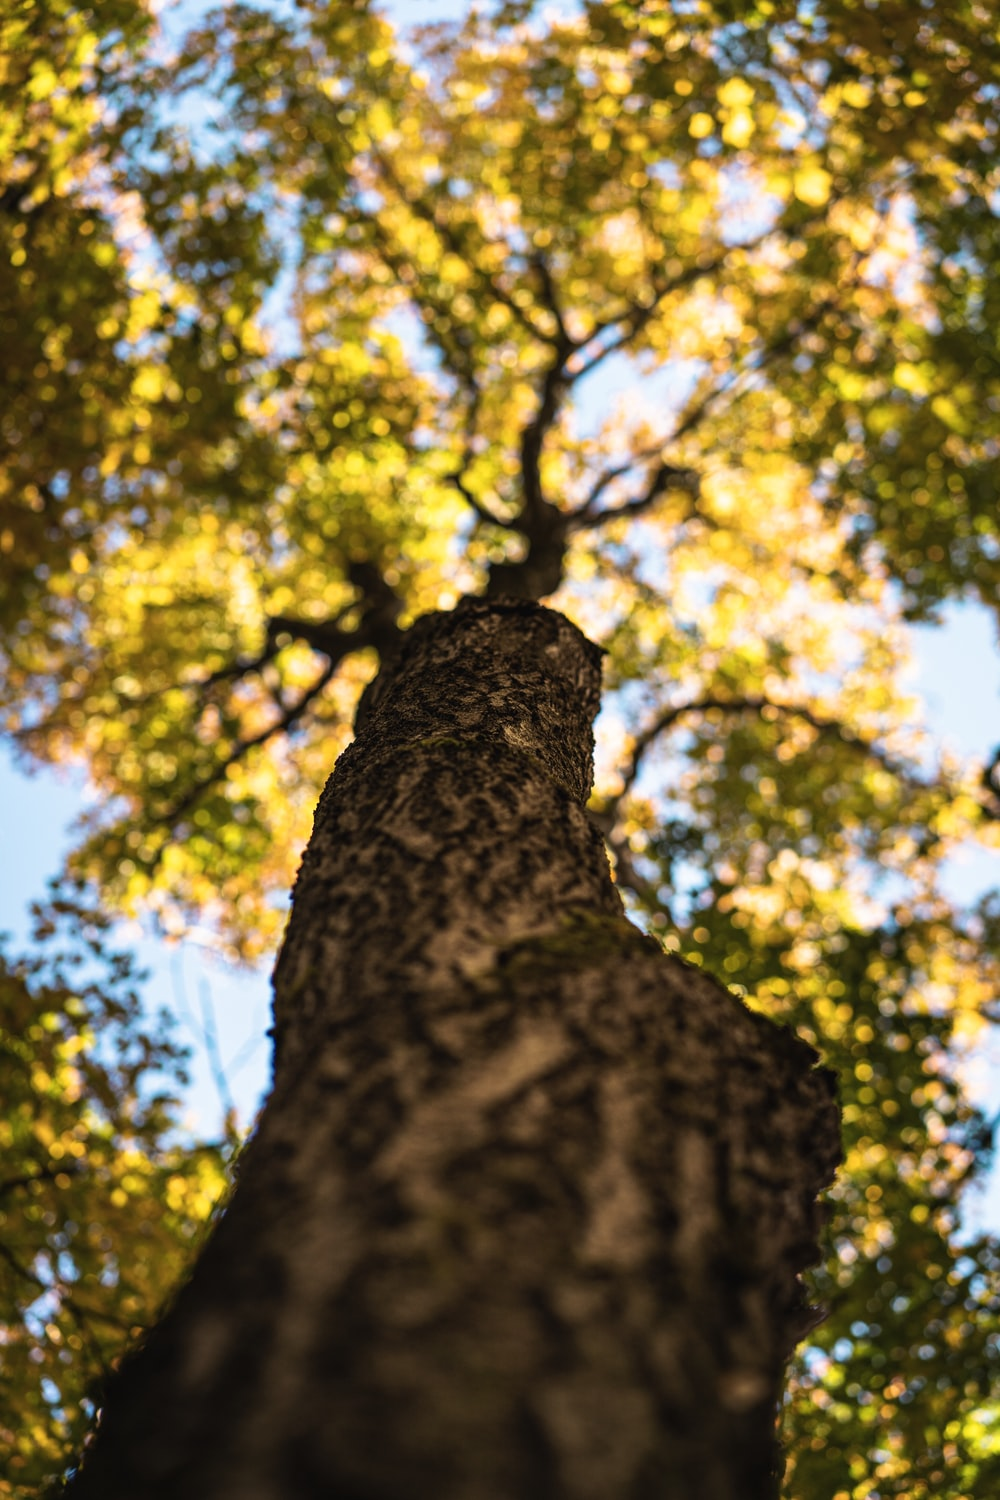 worm's-eye view photography of tree